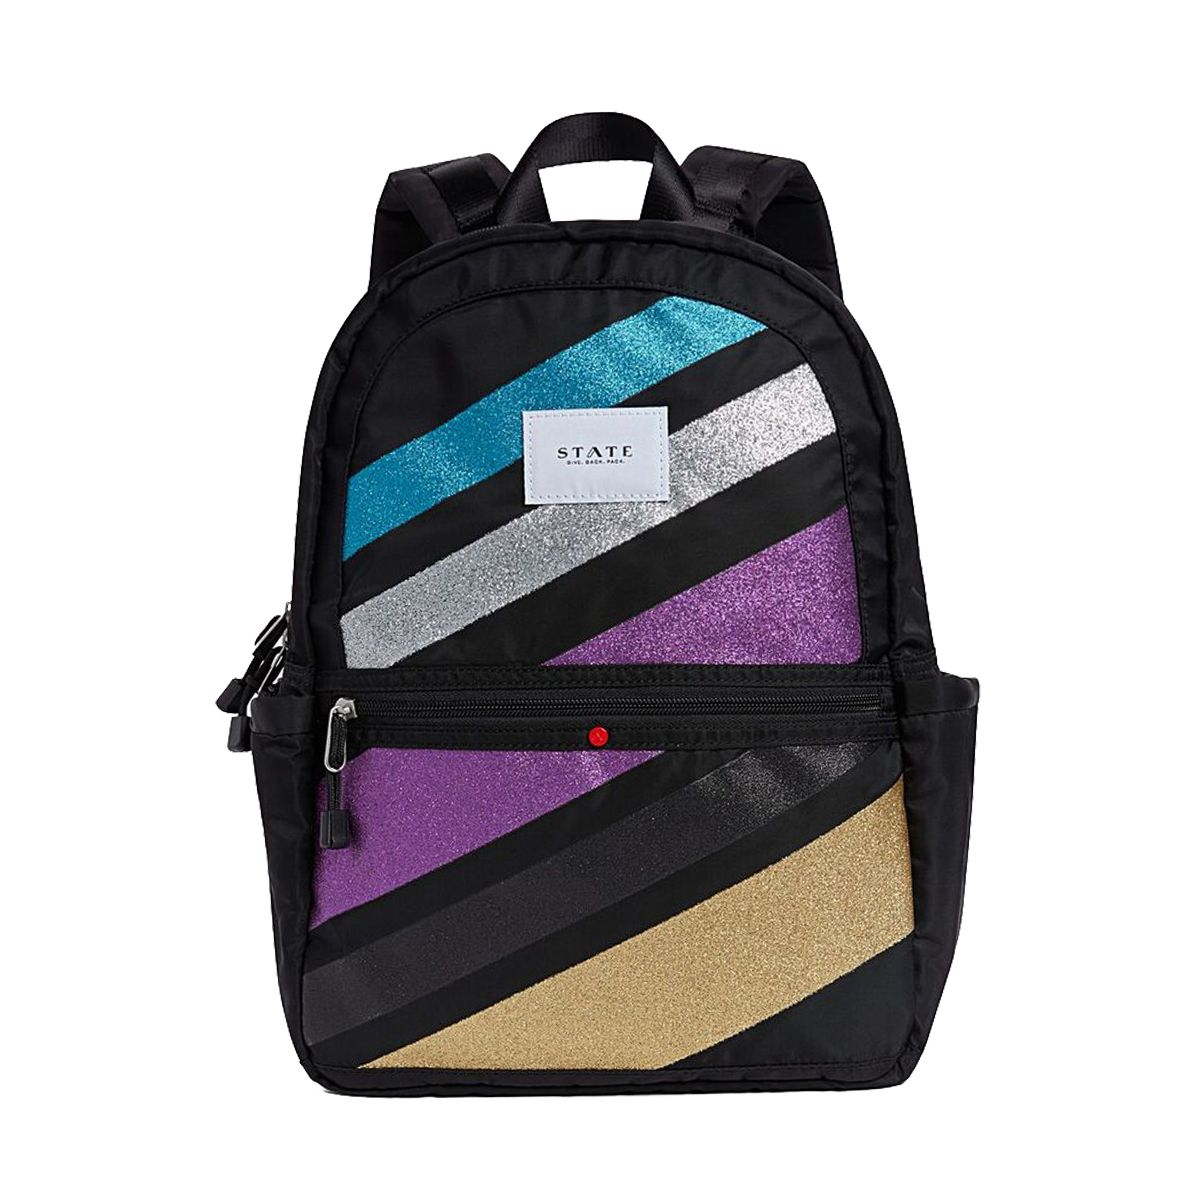 STATE Bags – The Kane Backpack – Glitter Stripe